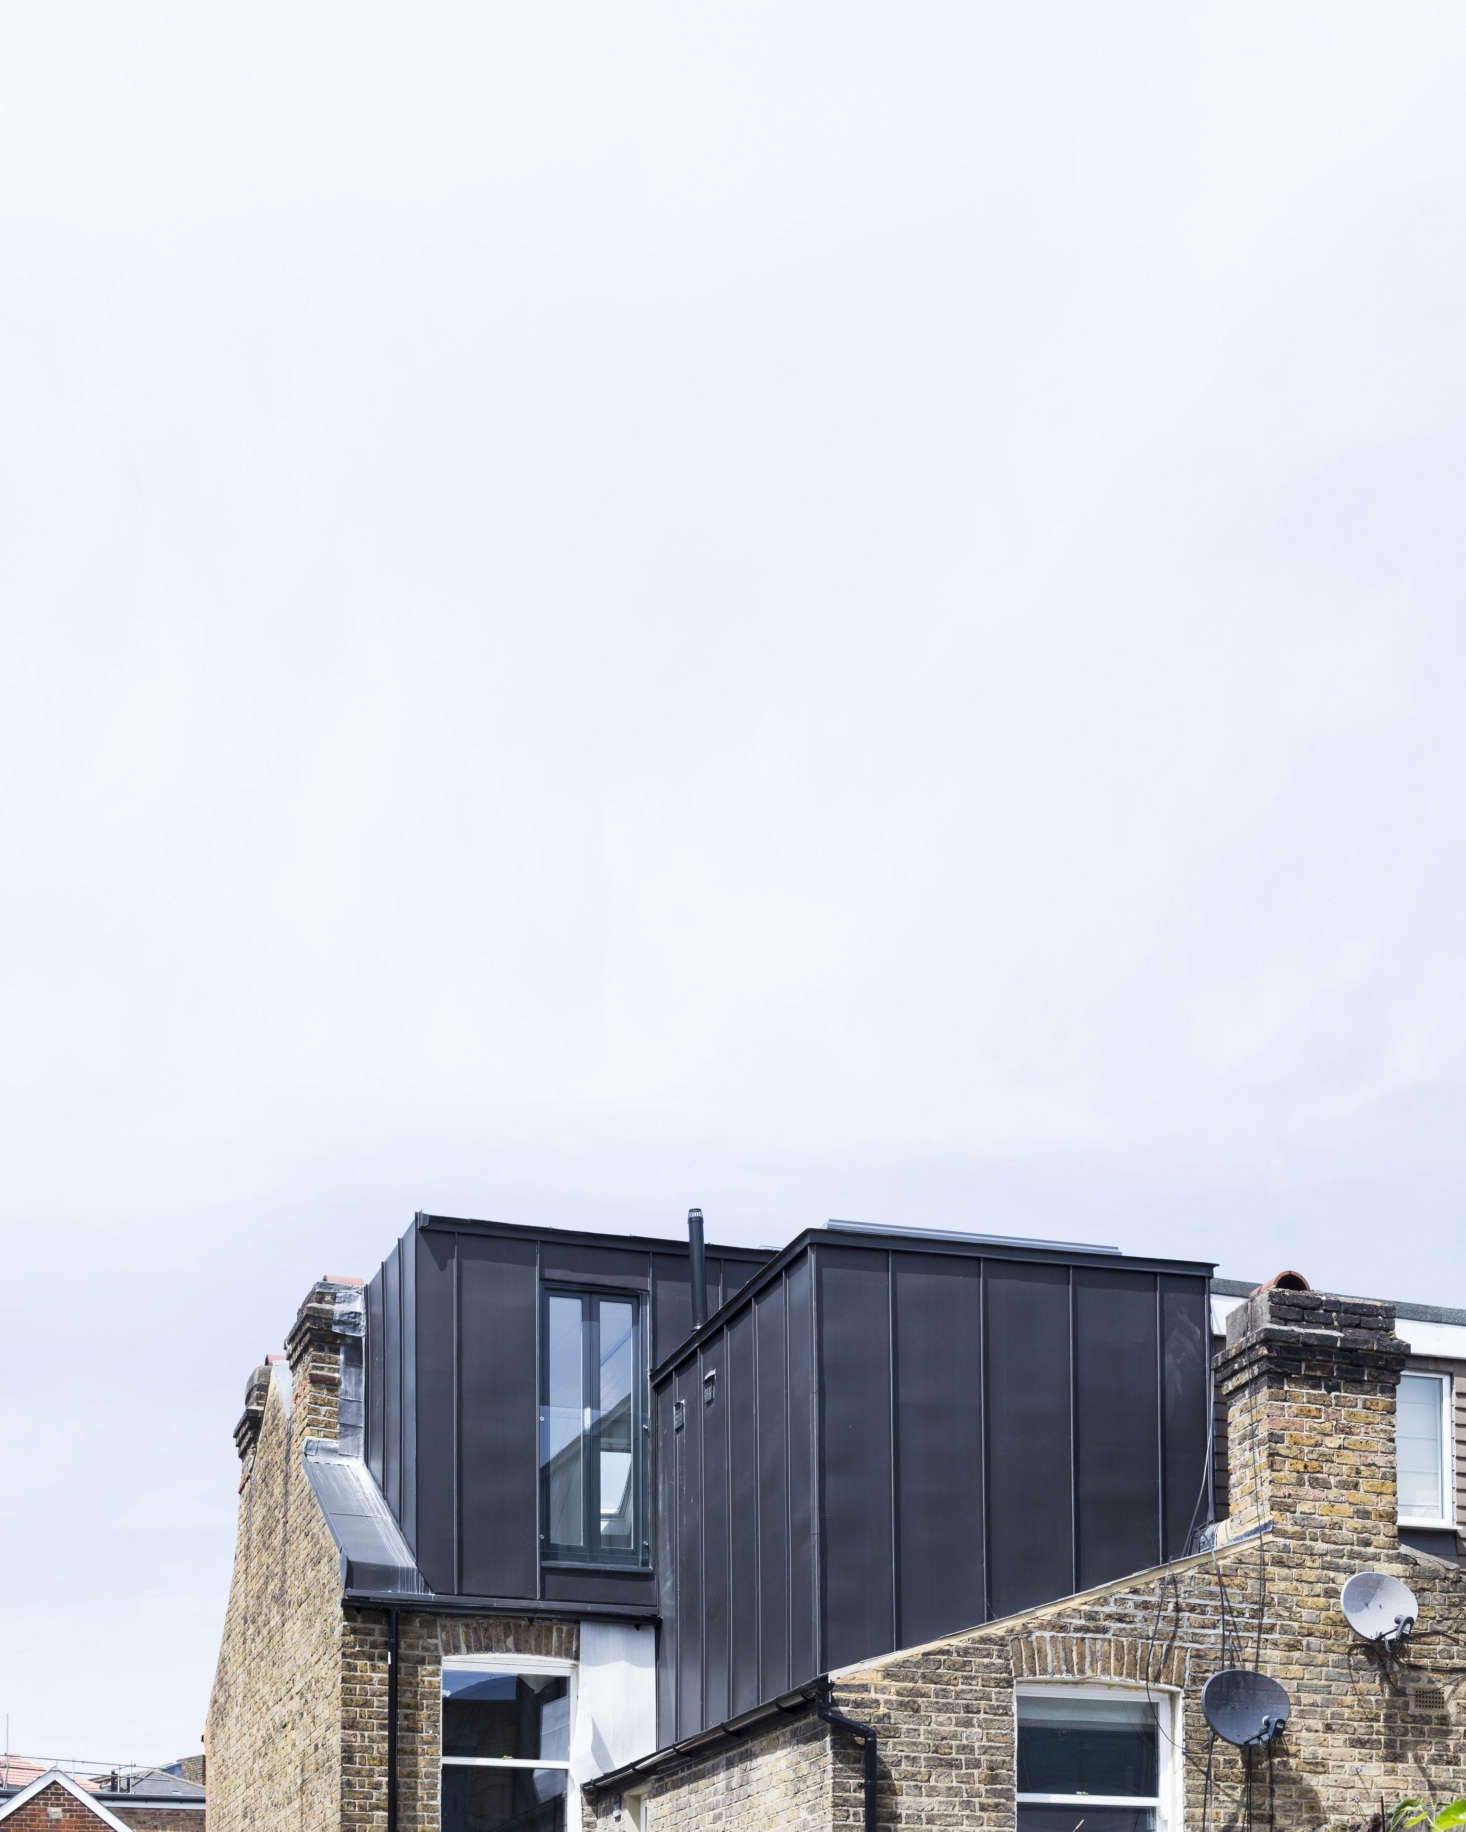 On the roof, two standing-seam metal additions extend the master bedroom and bath. The color was selected to work with the dark gray of the neighboring rooflines.